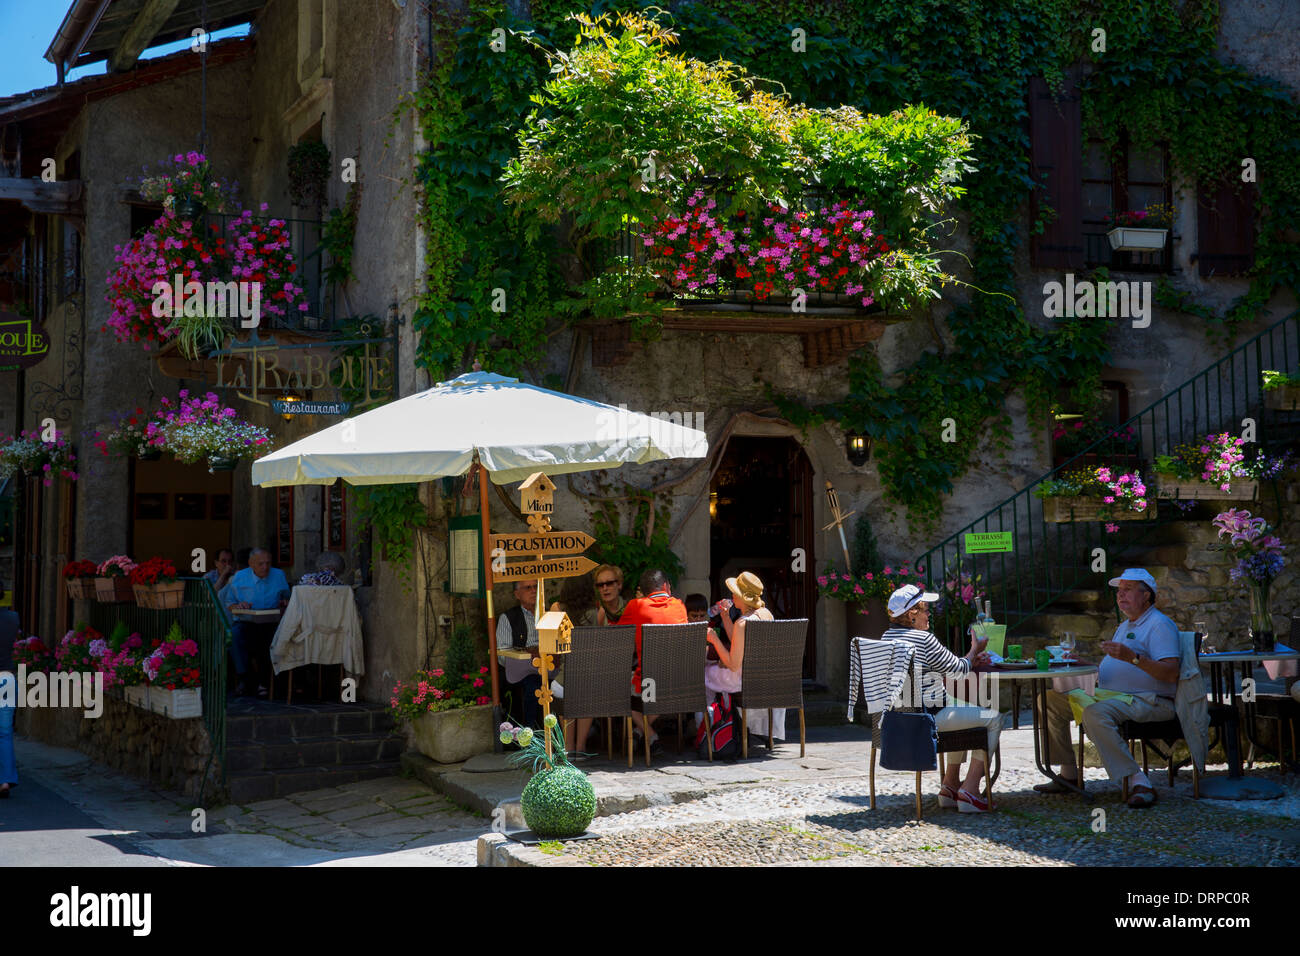 Diners at restaurant cafe La Raboue in the historic medieval district of Yvoire by Lac Leman, Lake Geneva, France - Stock Image